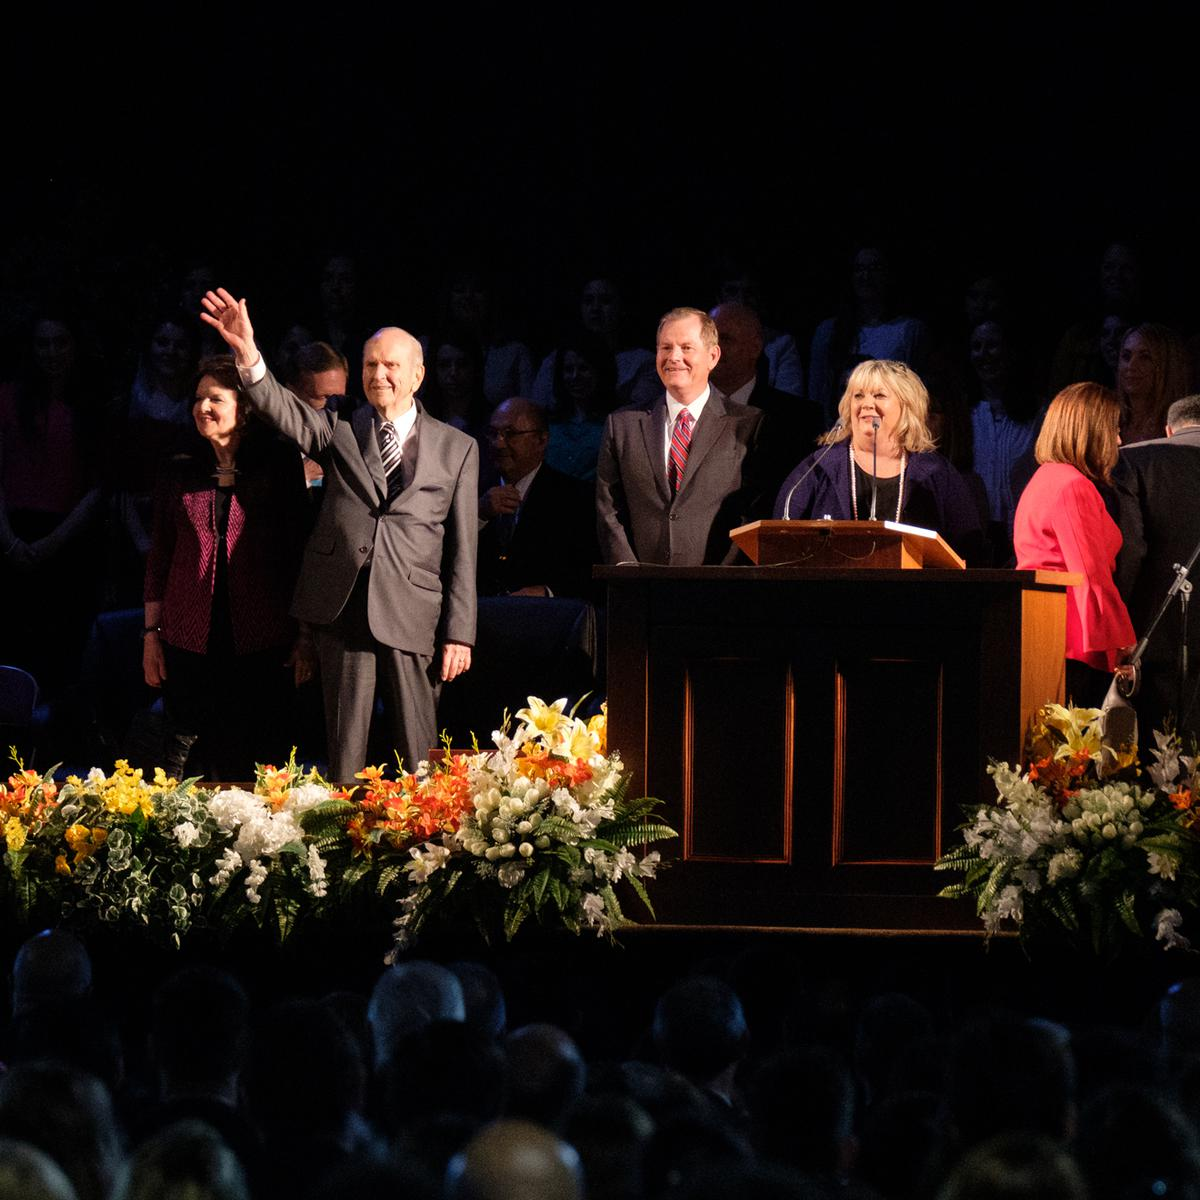 pres nelson wave